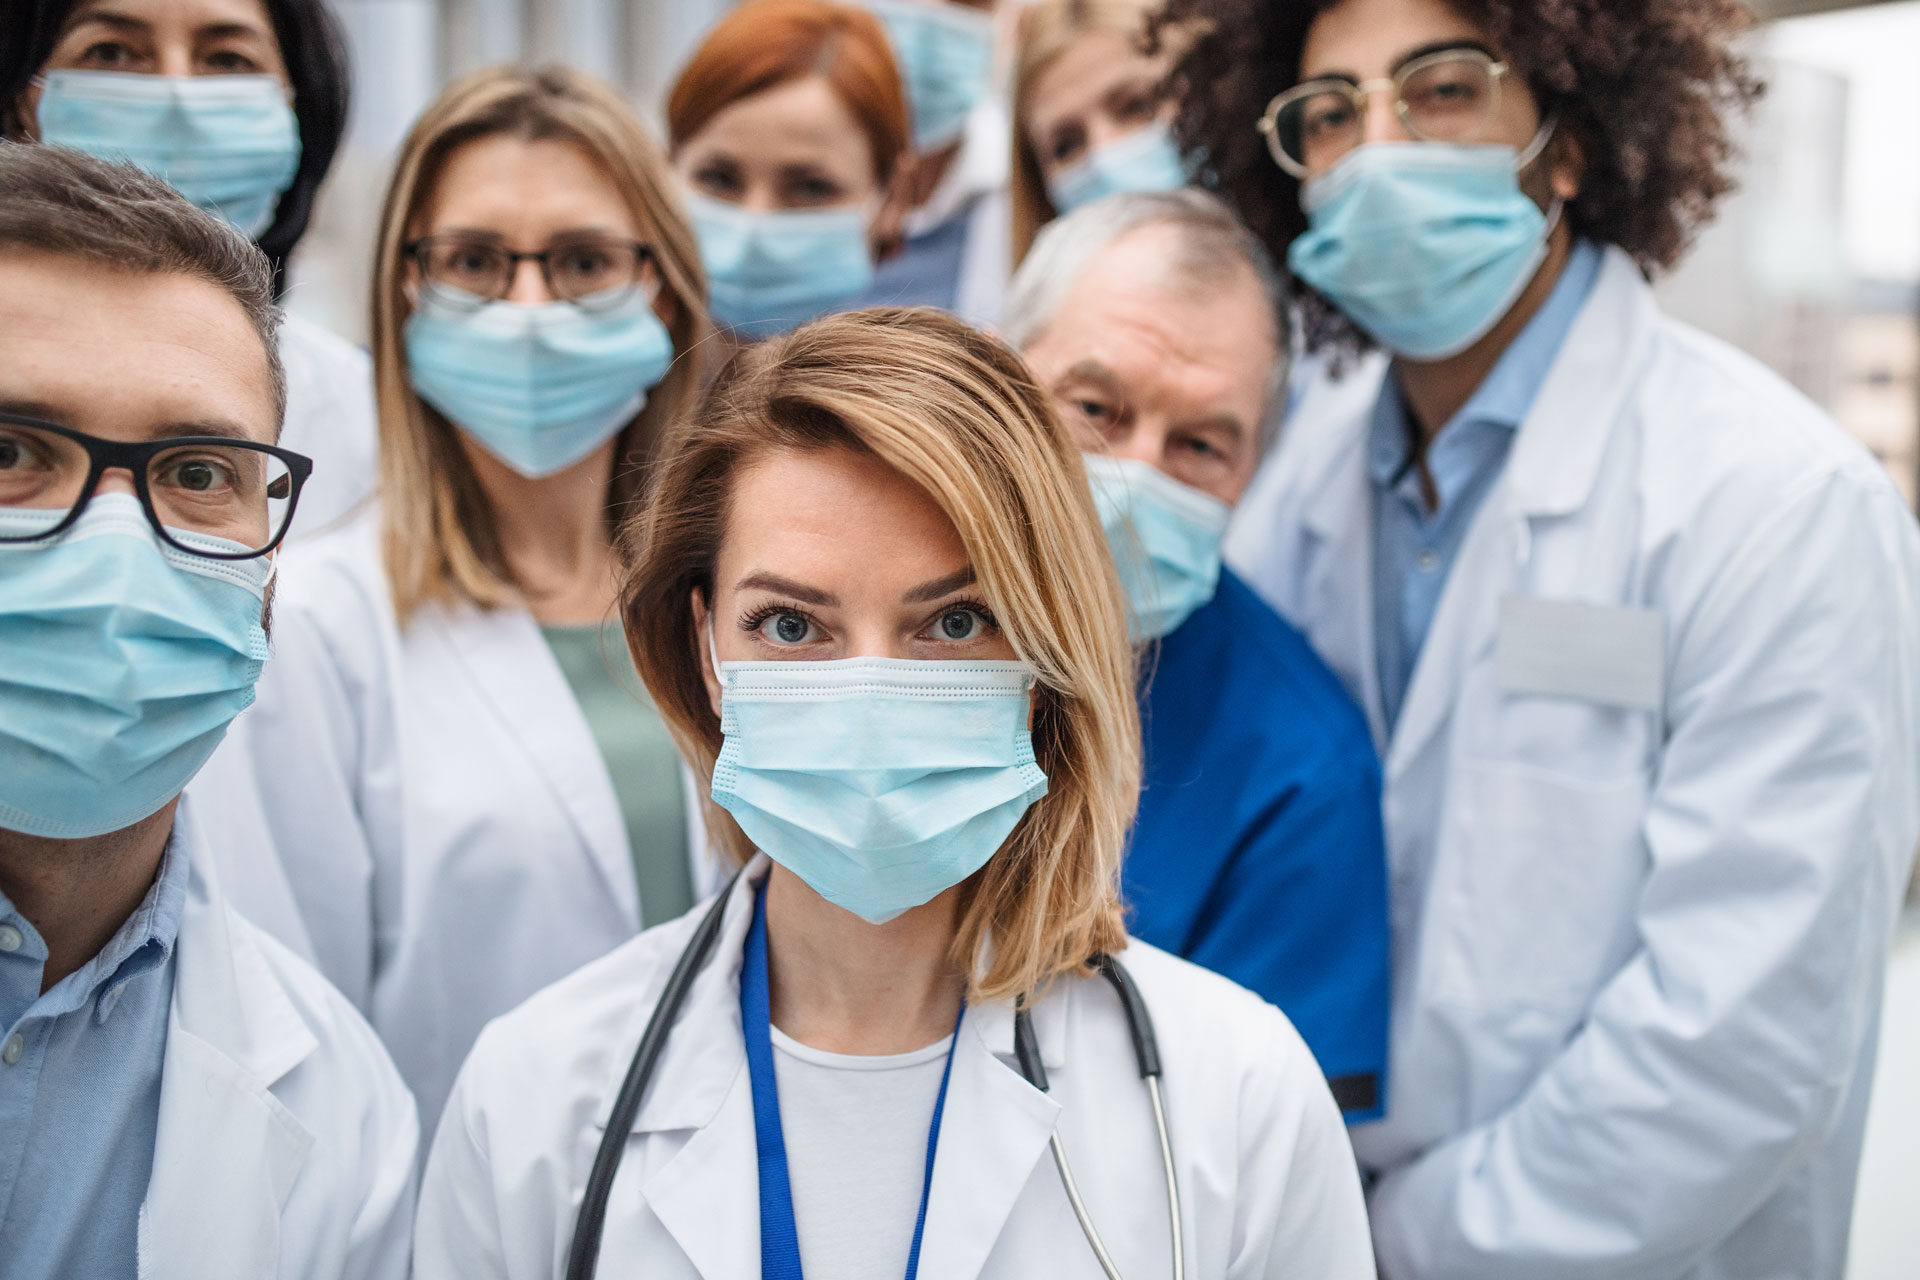 group-of-doctors-with-face-masks-looking-at-camera-ZAL8RZC.jpg